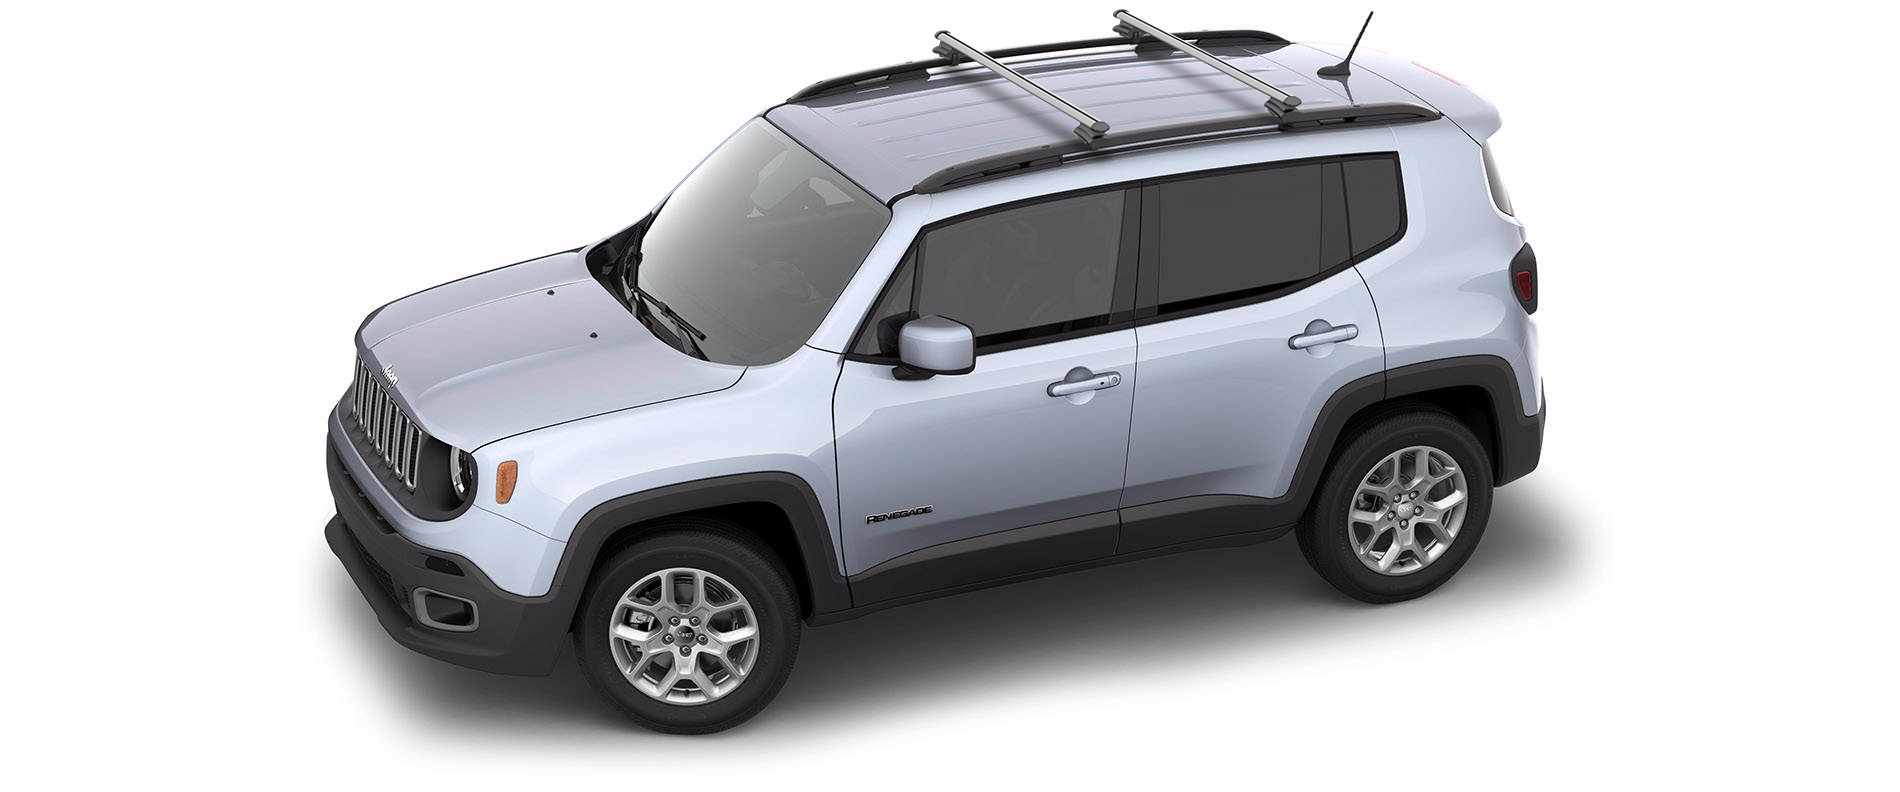 jeep renegade limited 4x4 exterior image gallery pictures photos. Black Bedroom Furniture Sets. Home Design Ideas